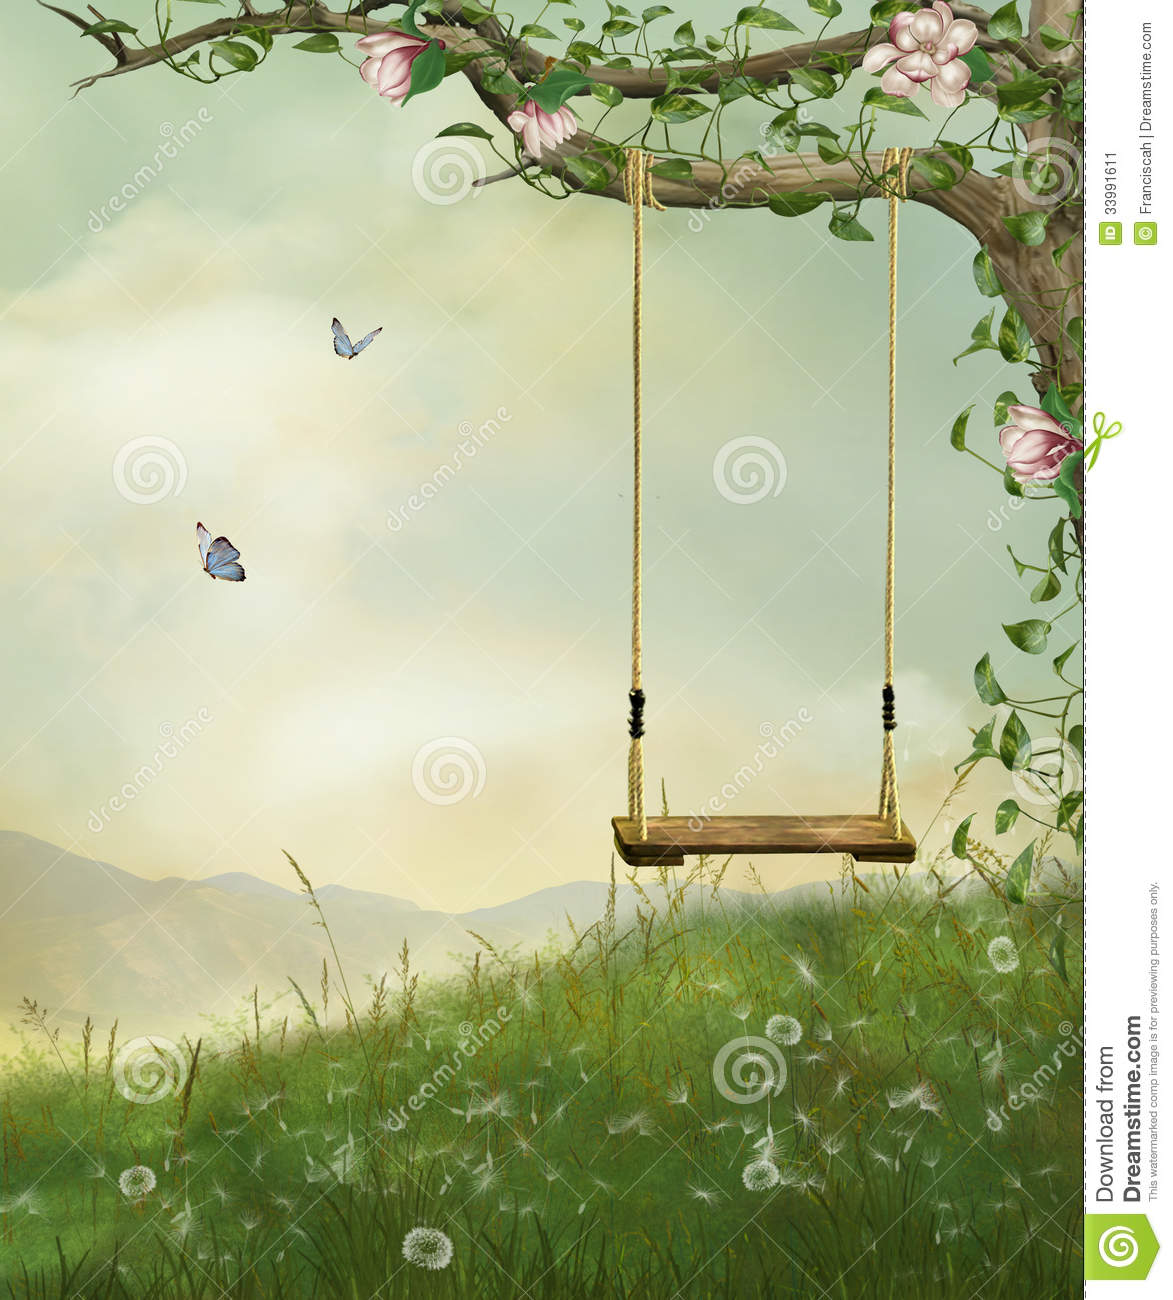 My Fantastic Swing Stock Image - Image: 33991611